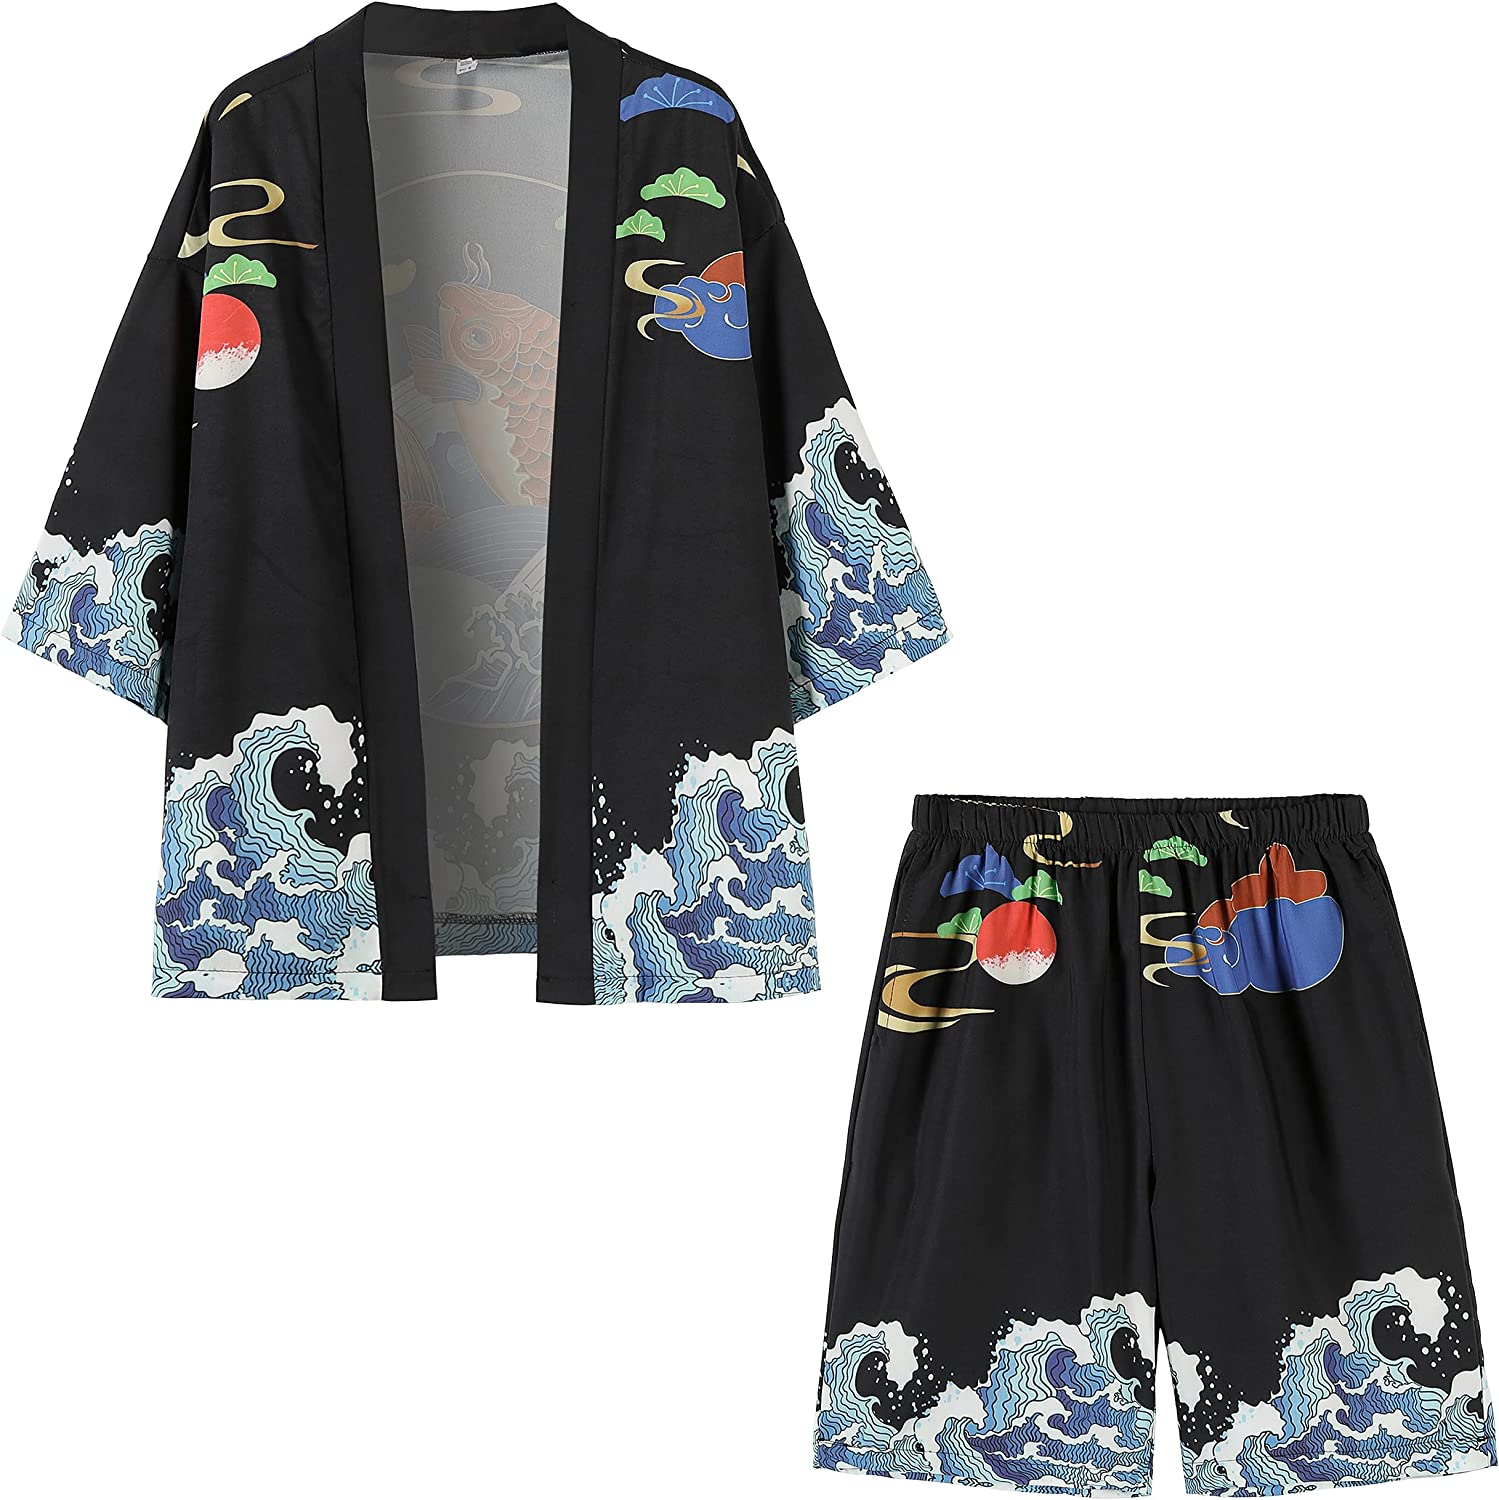 PRIJOUHE Mens Japanese Kimono Spring new work one after another Coat Open Front Loose Albuquerque Mall Seven Suits